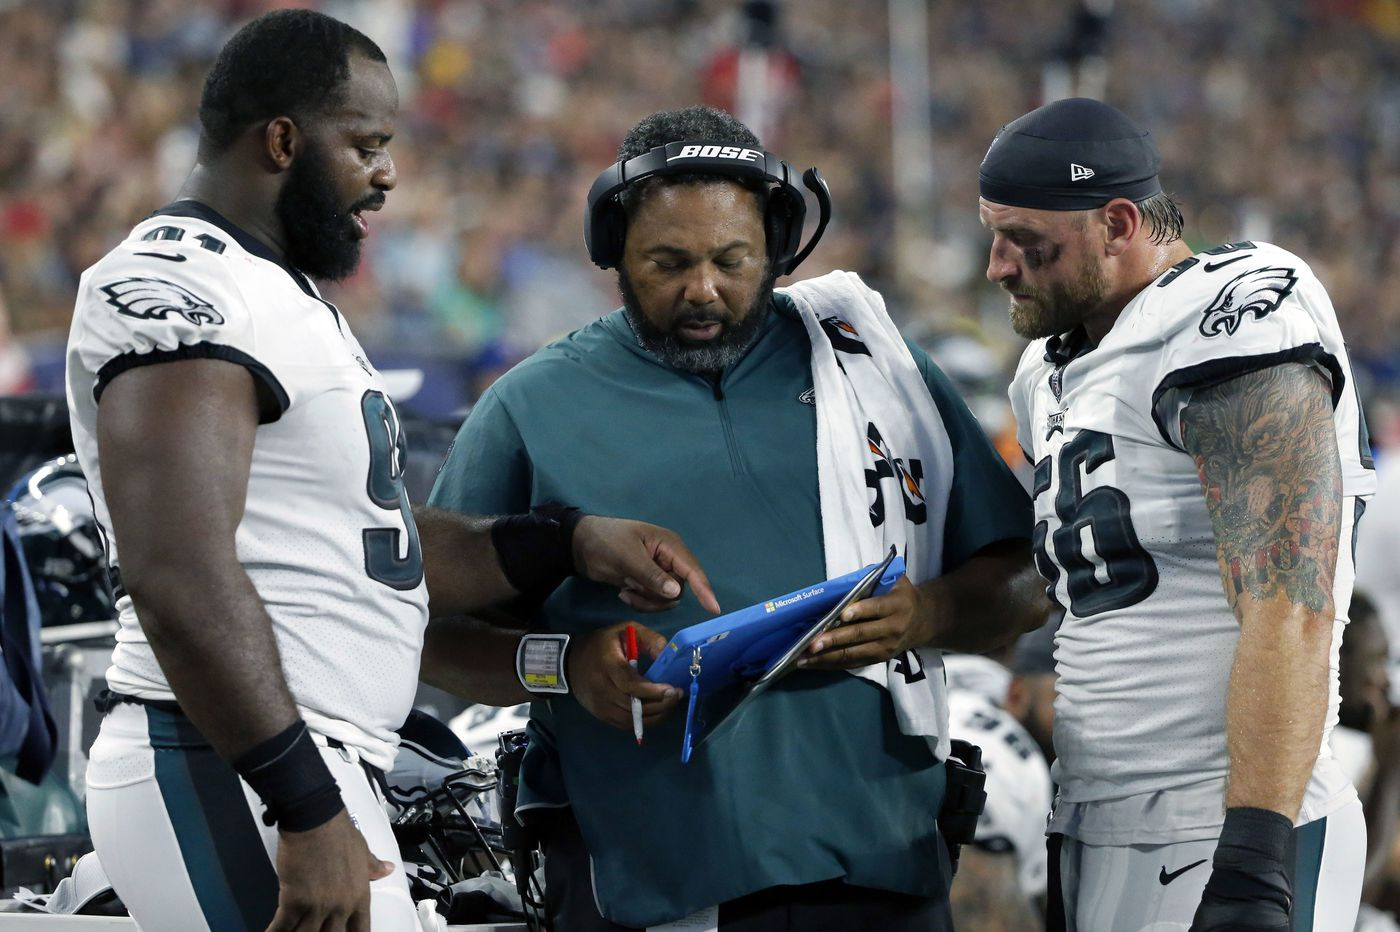 Flying coach: Eagles' Doug Pederson and Chris Wilson cherish rare chances to see sons play in college